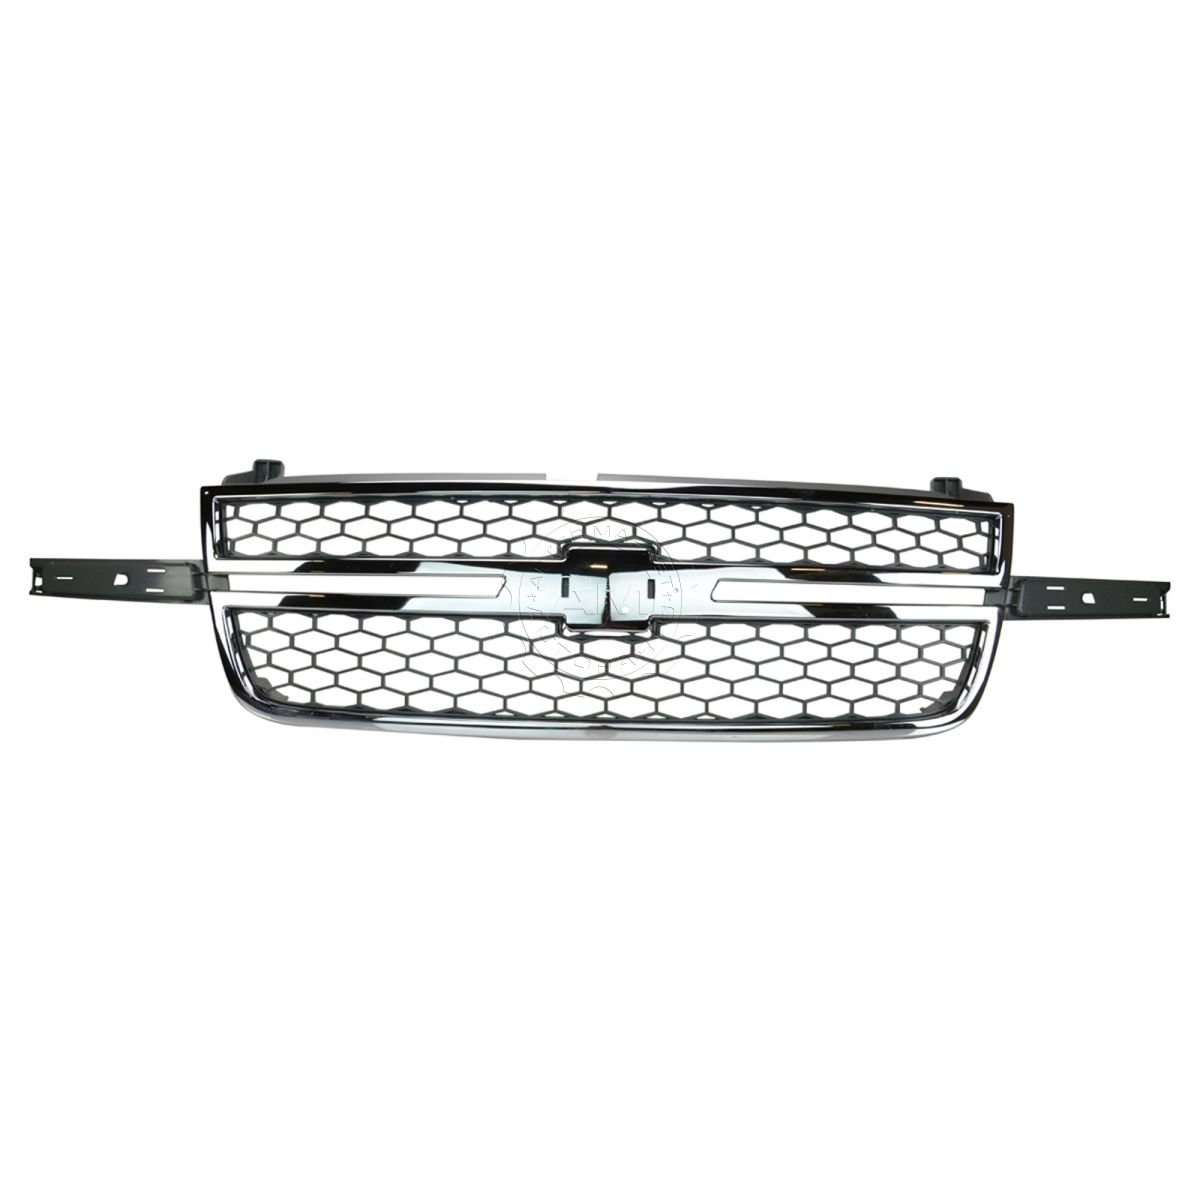 Honeycomb Grille Chrome & Gray for Chevy Silverado Pickup